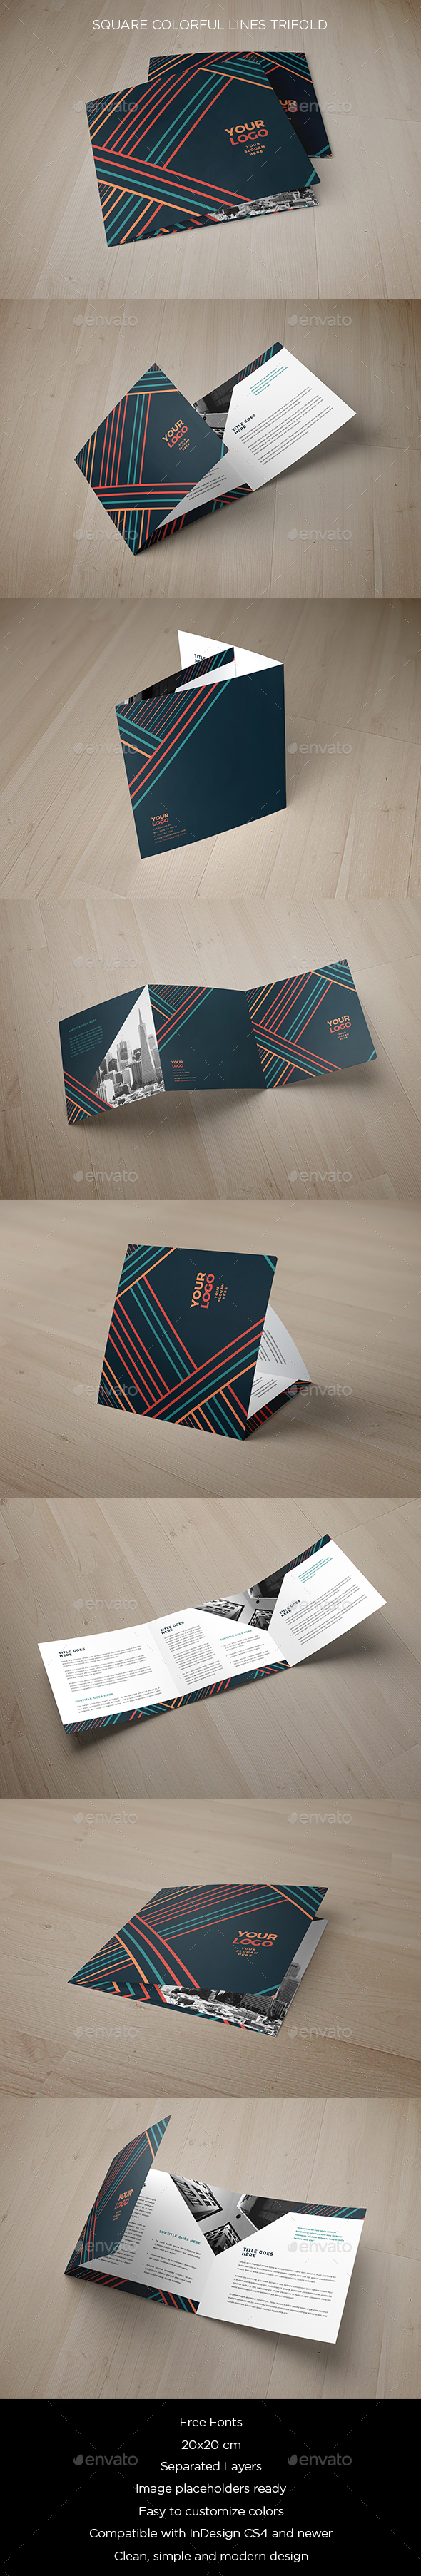 Square Colorful Lines Trifold - Brochures Print Templates